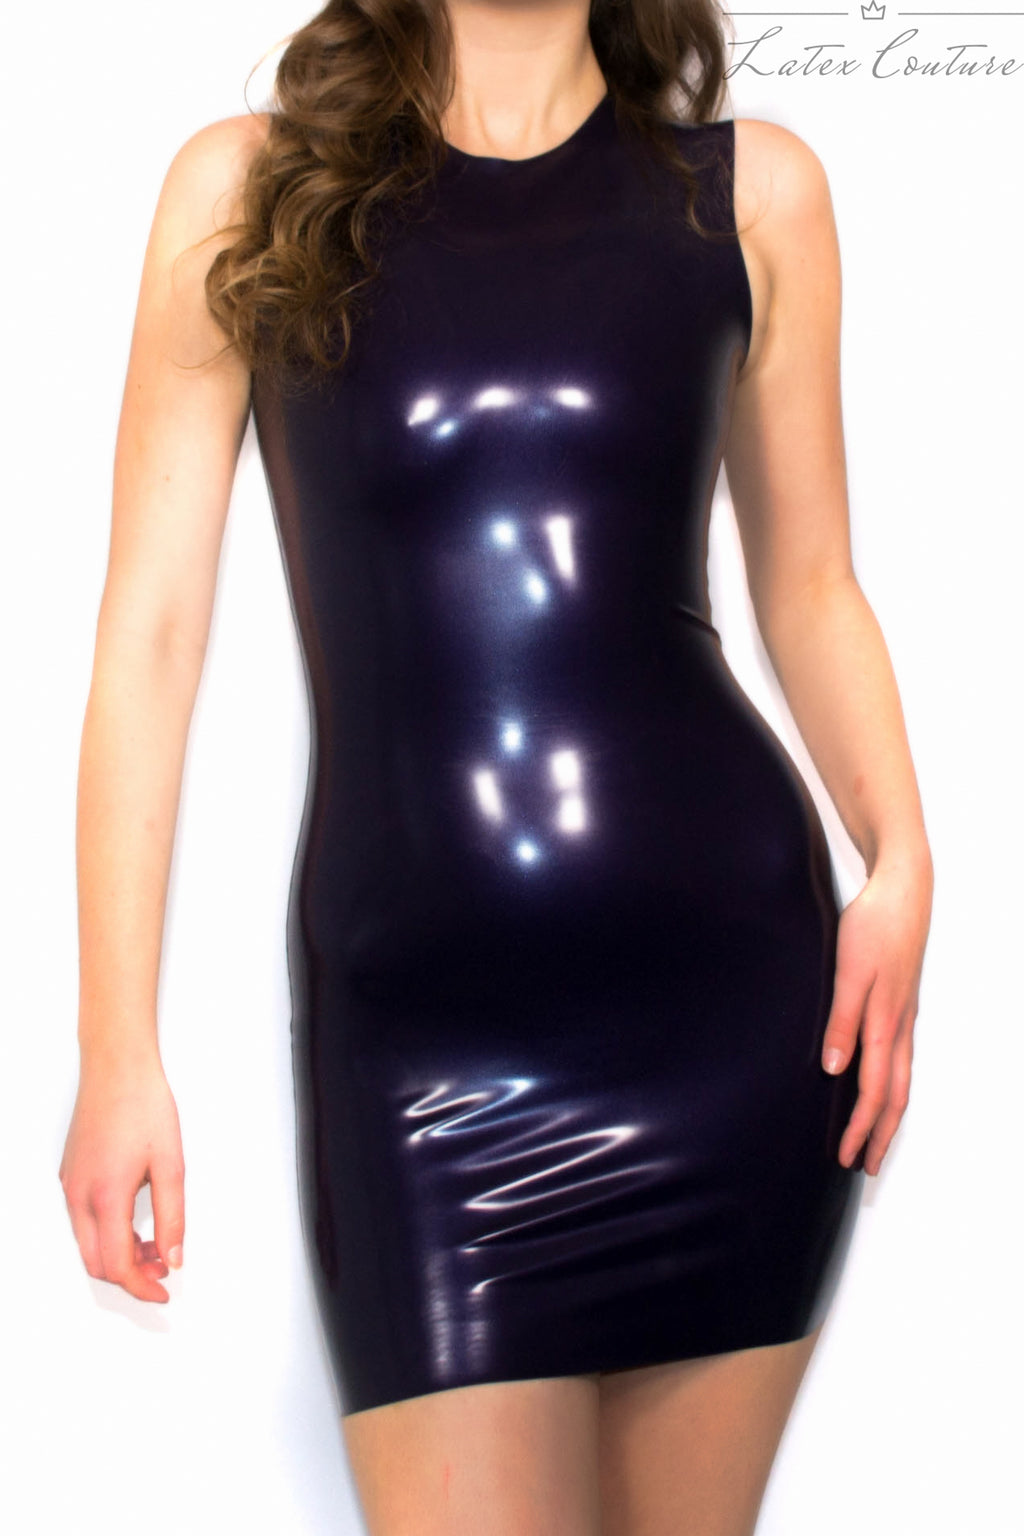 Latex Dress - Latex High Necked Latex Dress